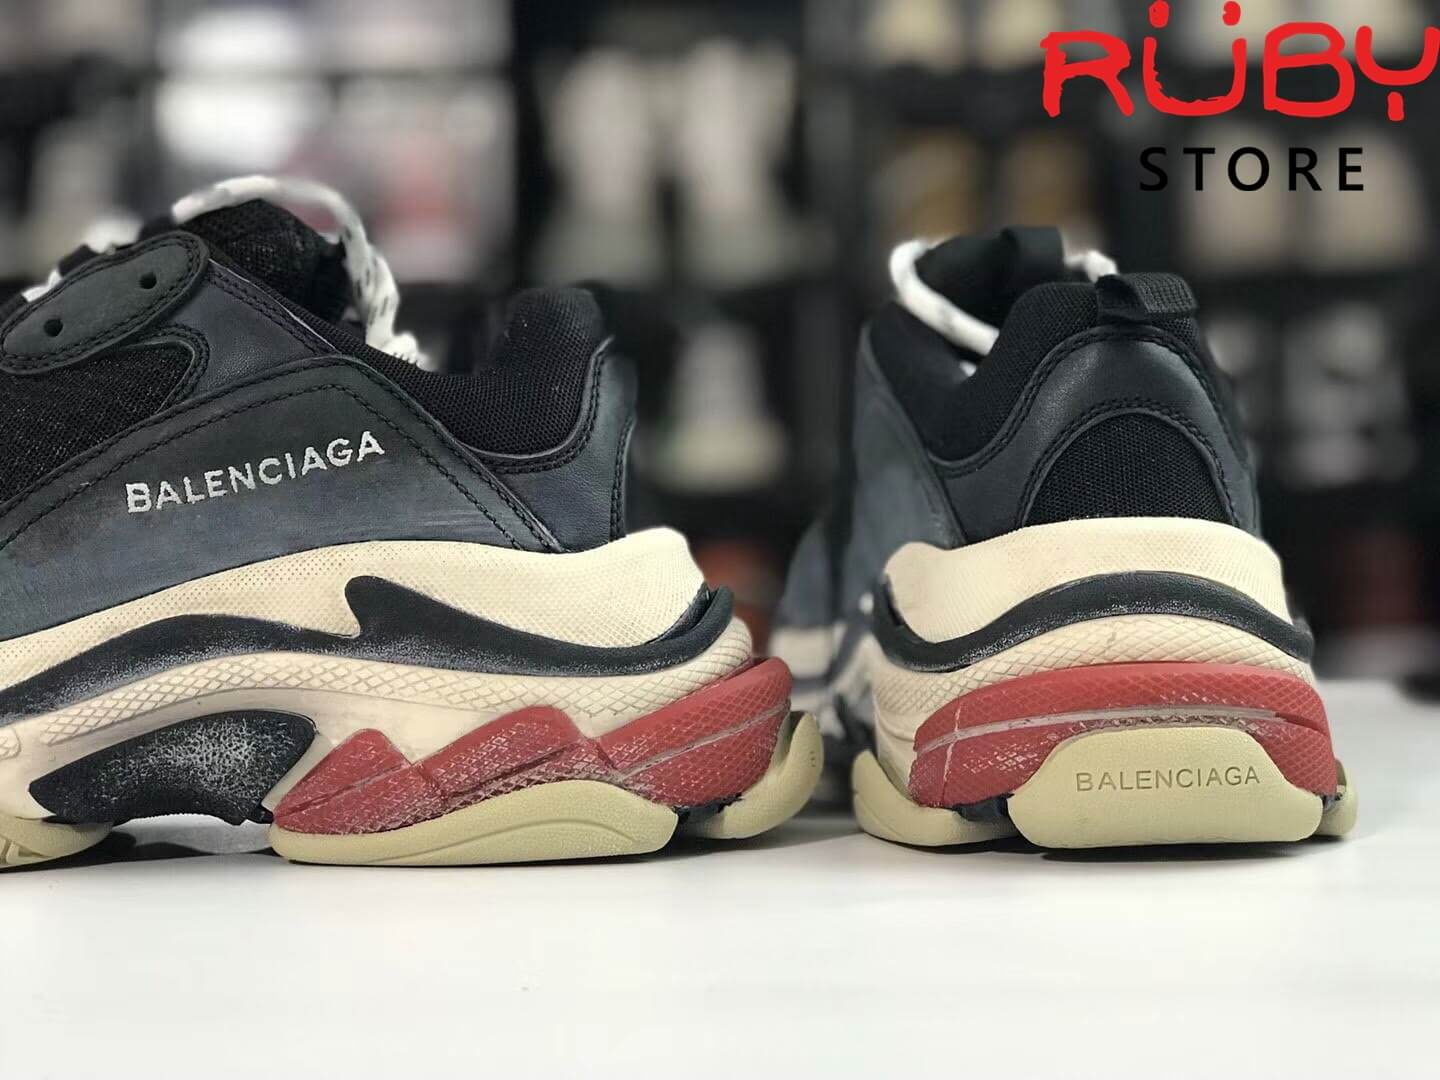 giày-balenciaga-triple-s-replica-11-best-like-authentic-99 (29)